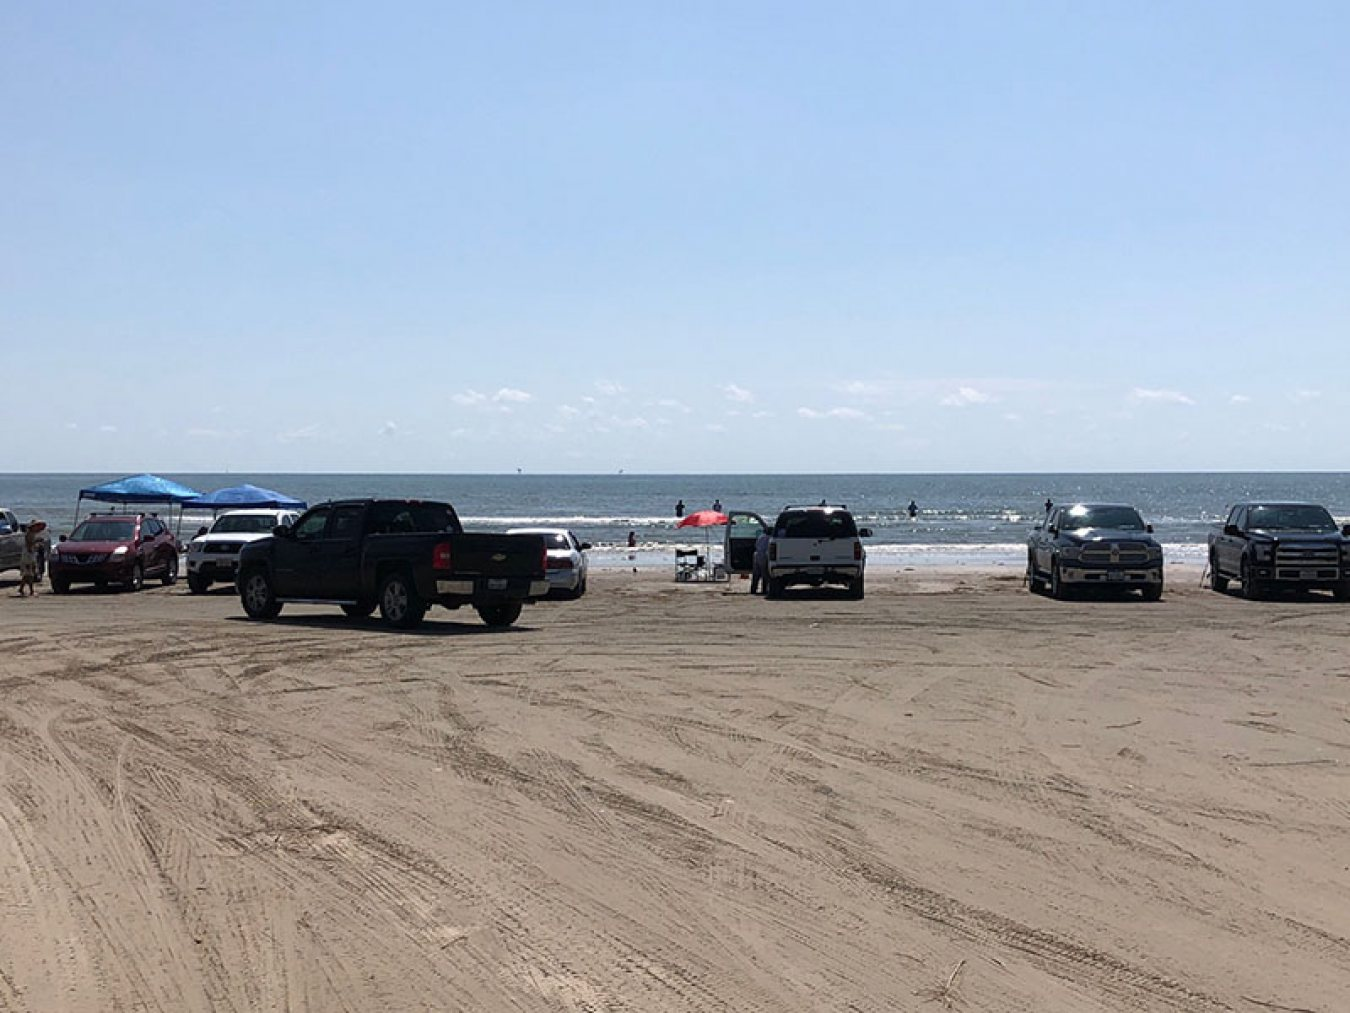 Beach Access Point 10 at Hershey Beach